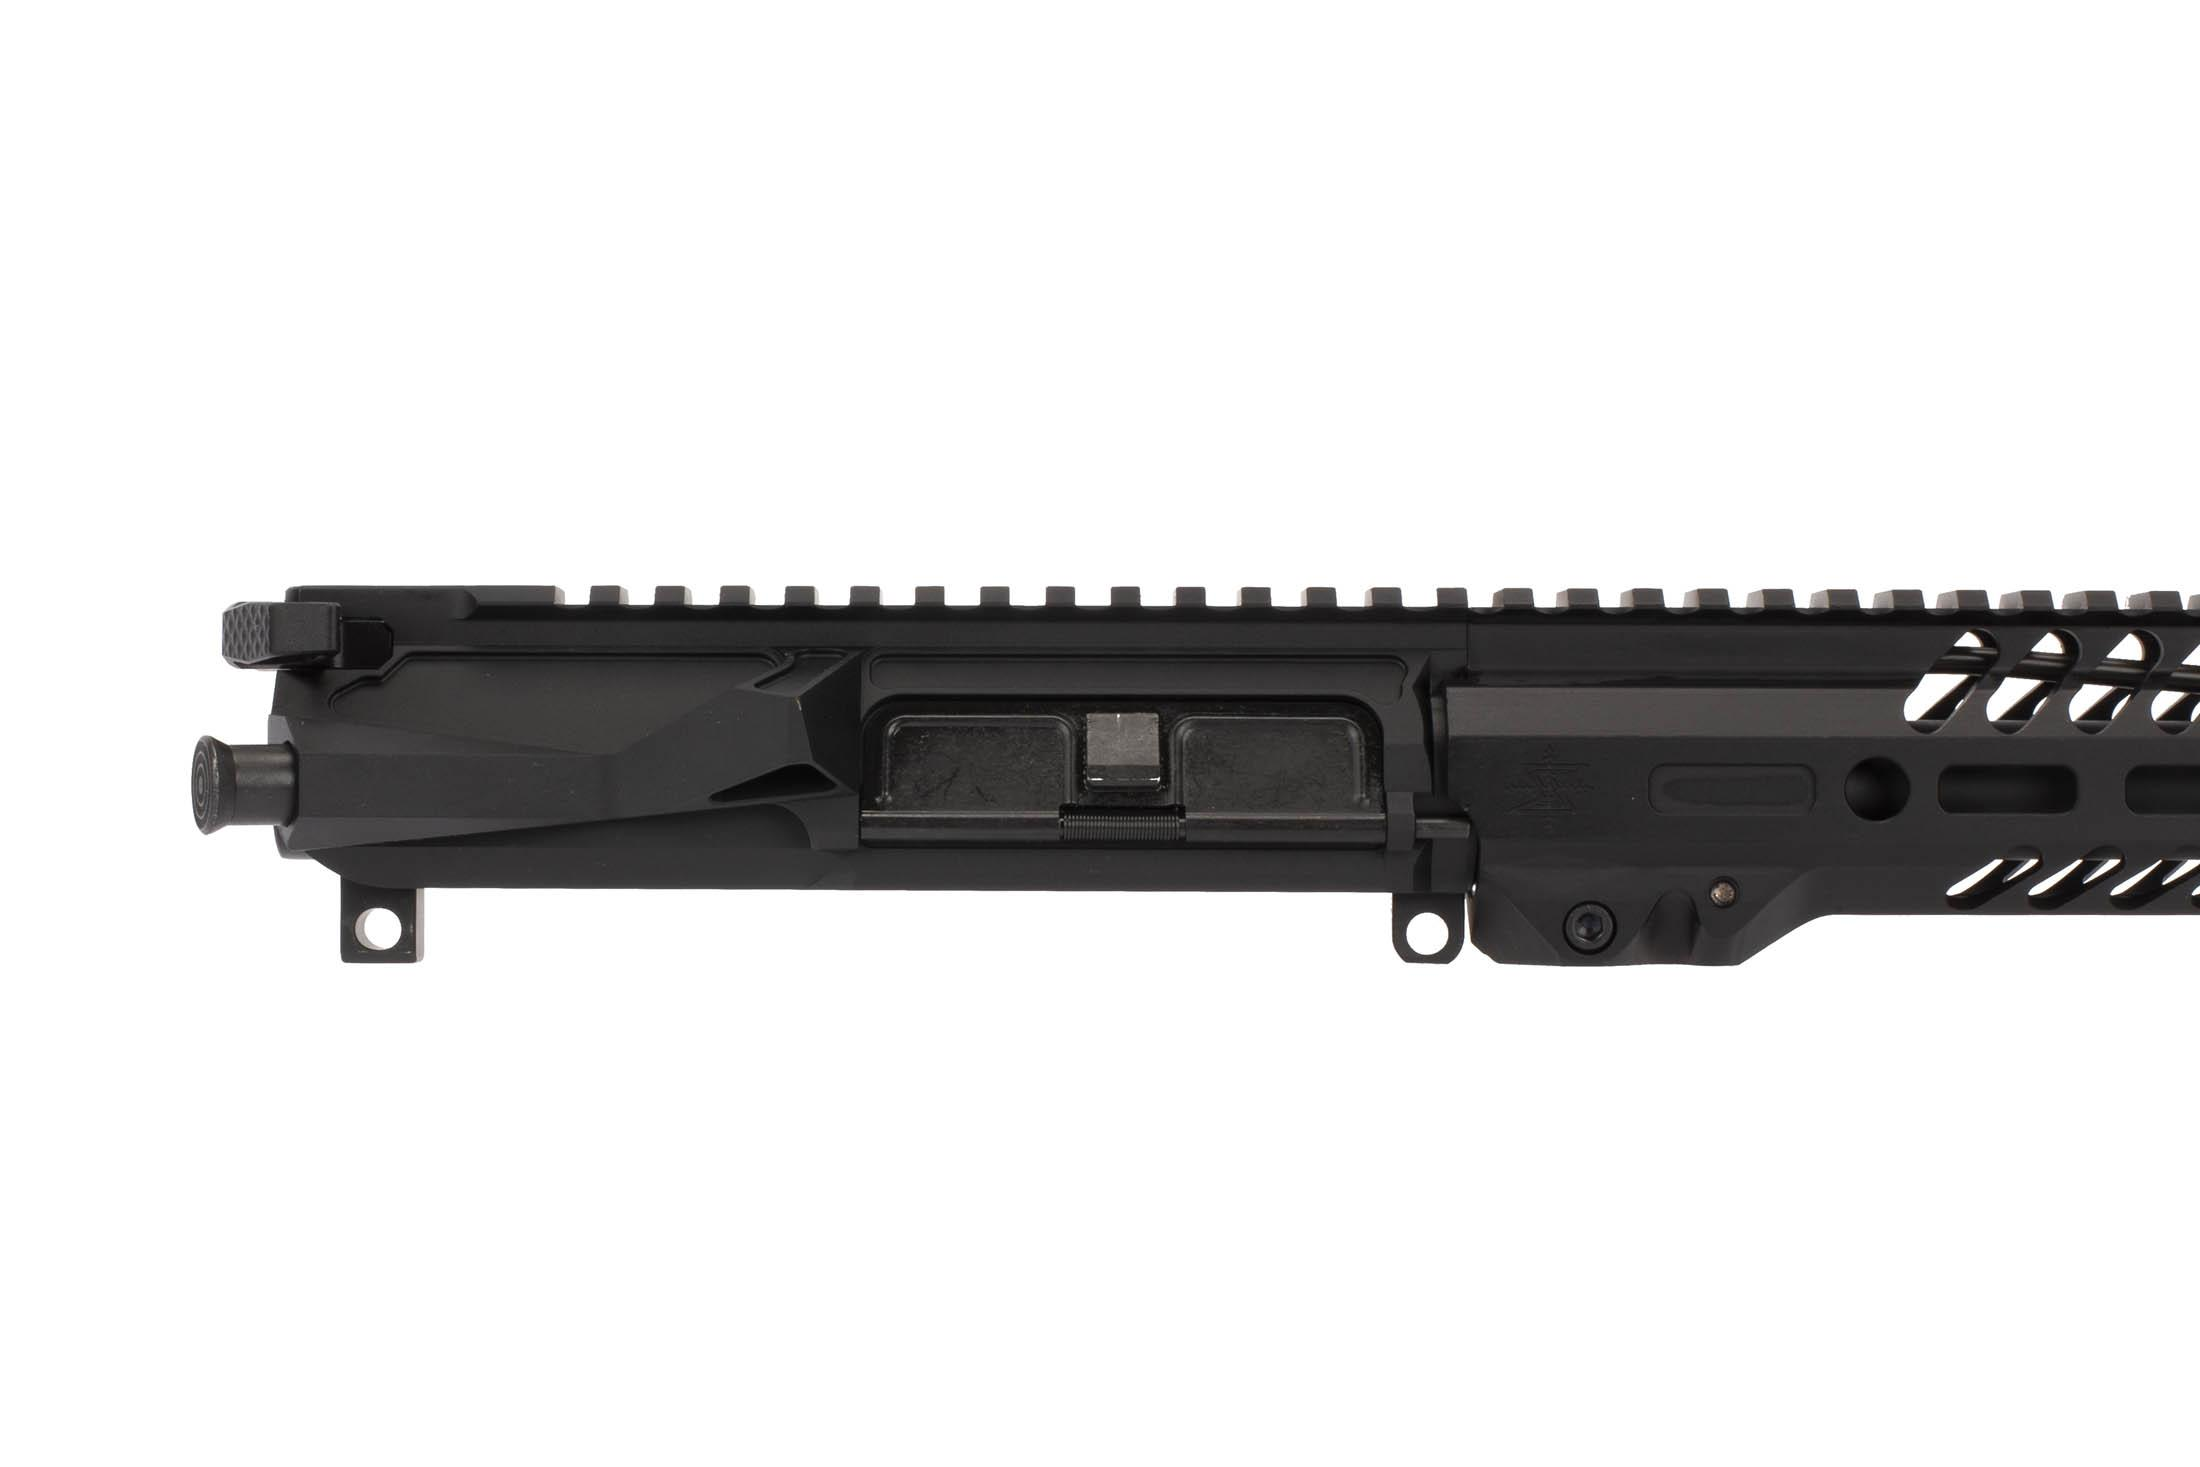 The Seekins Precision 14.5 NX14 .223 Wylde Complete Upper includes a pre-installed forward assist and ejection port cover